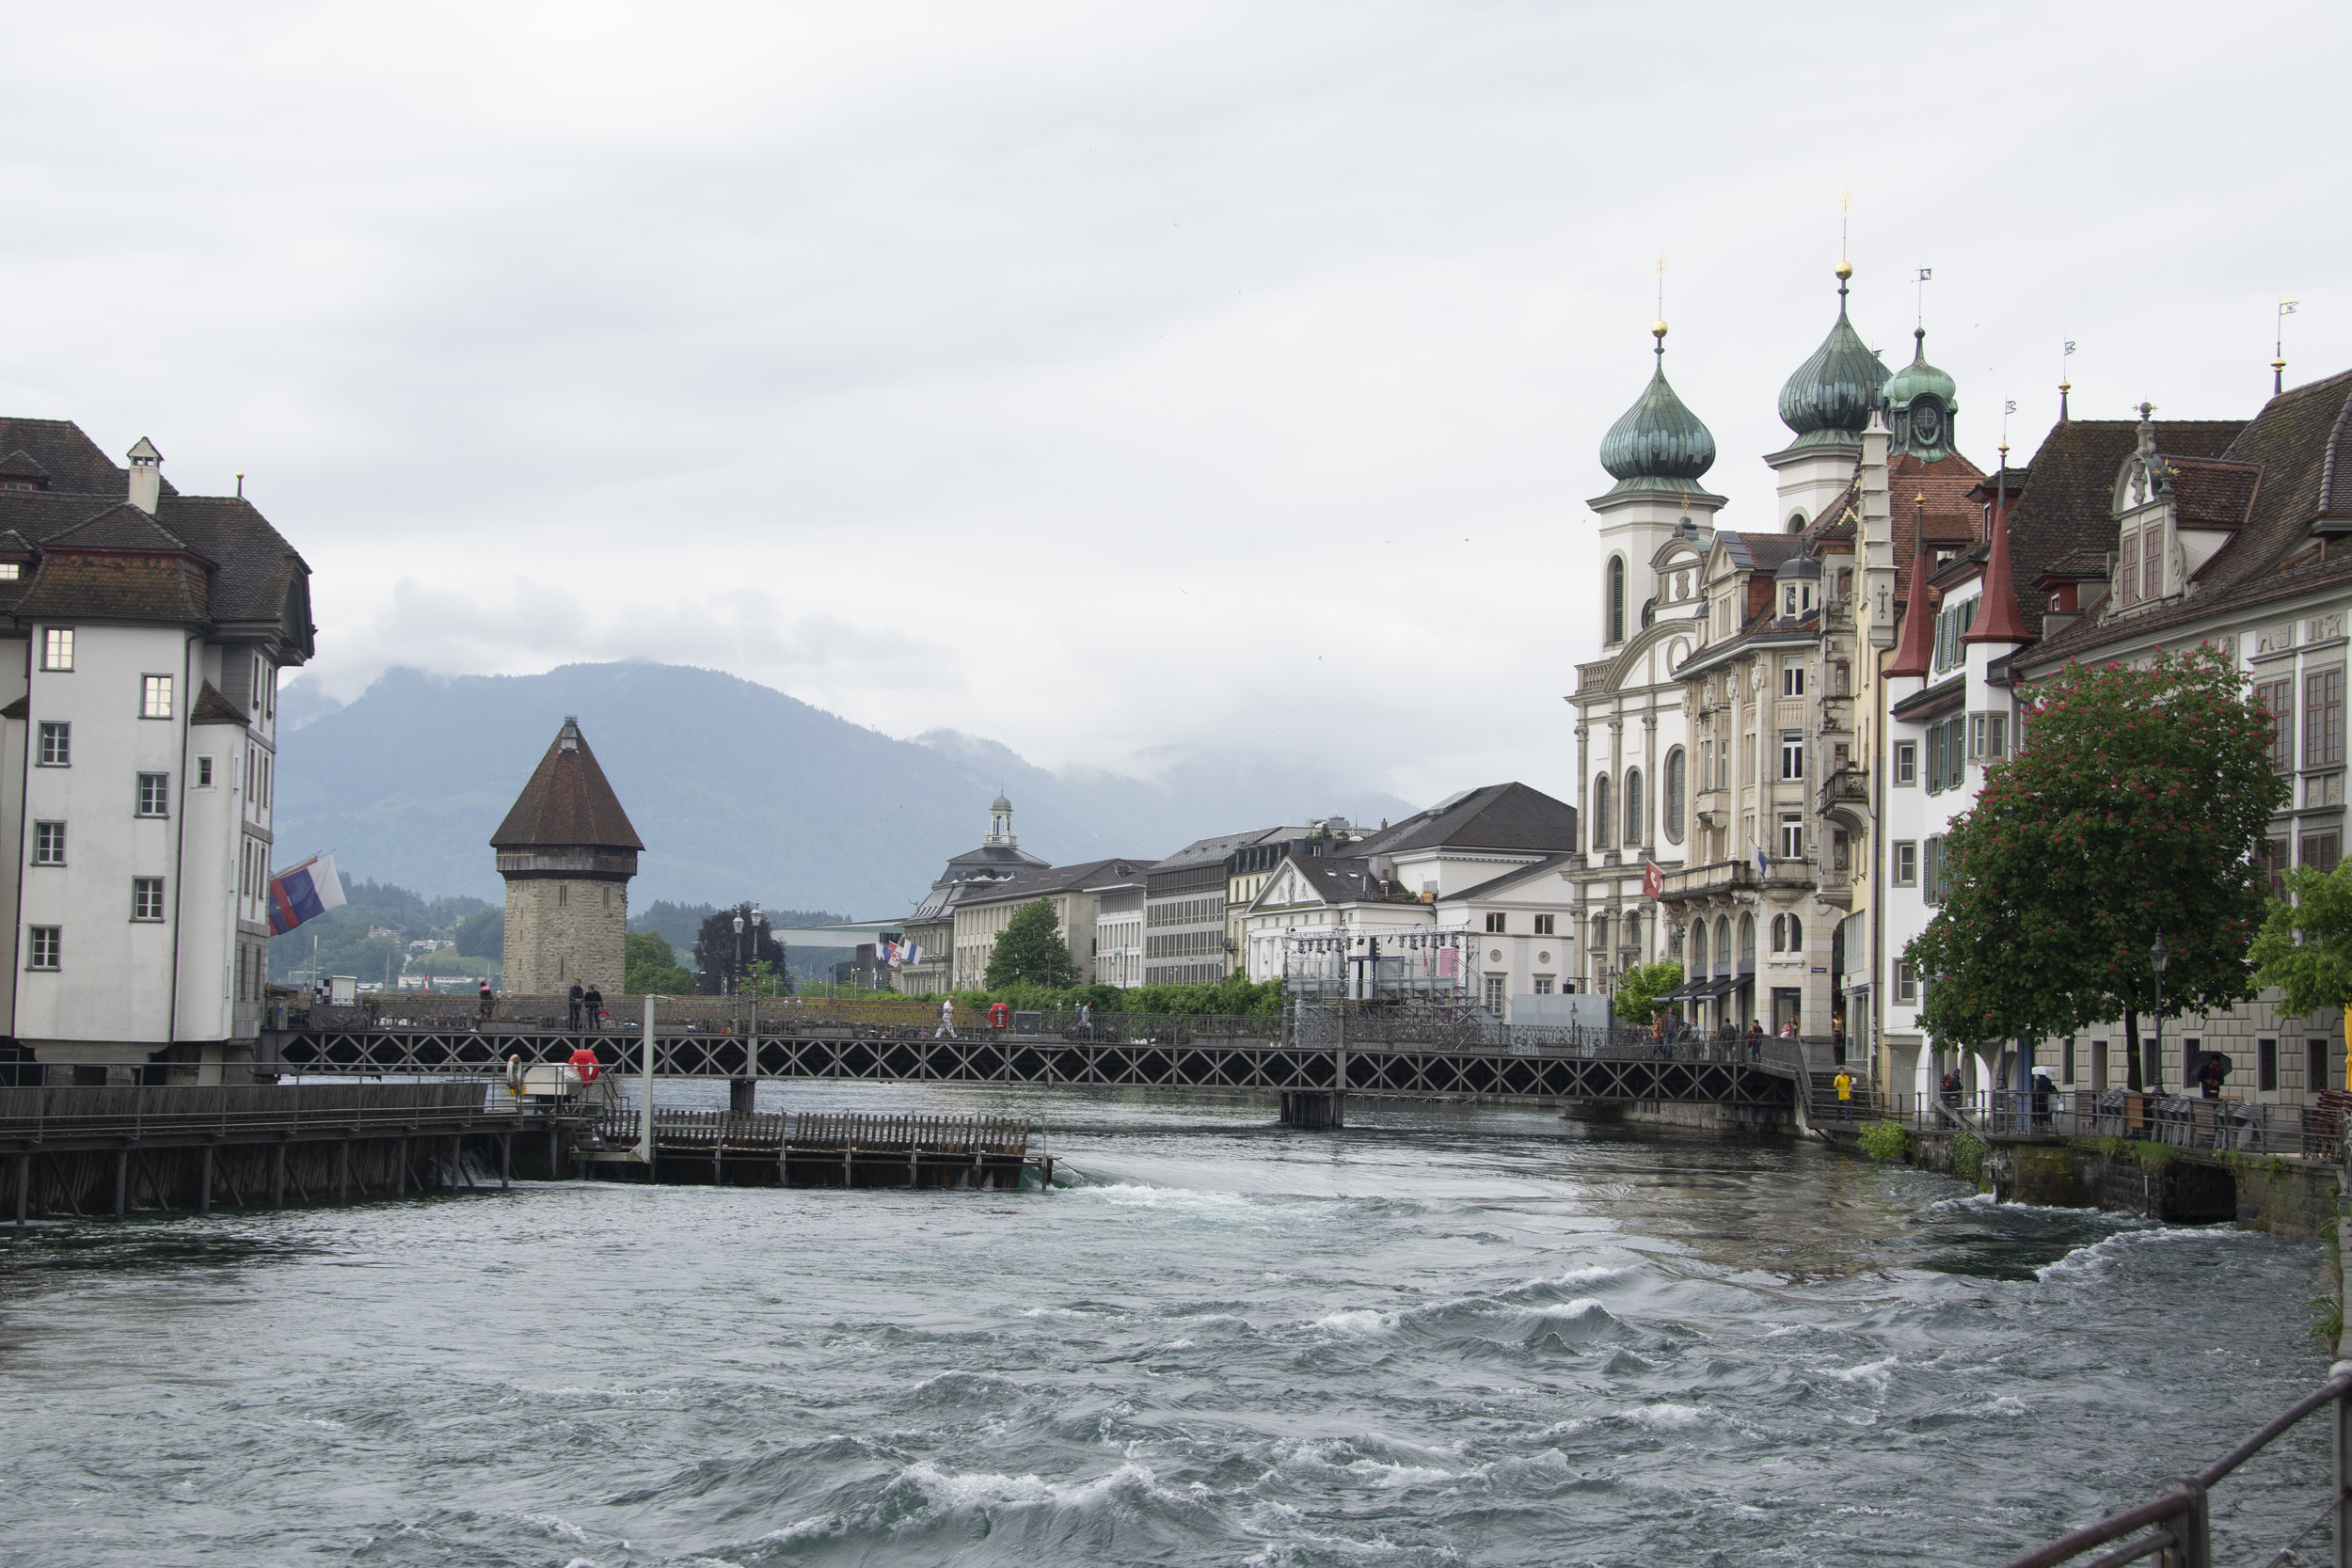 Limmat River, Luzerne   The medieval bridge in mid-ground spans the Limmat River. An Orthodox church with onion-domes lies further back. Still no sun.